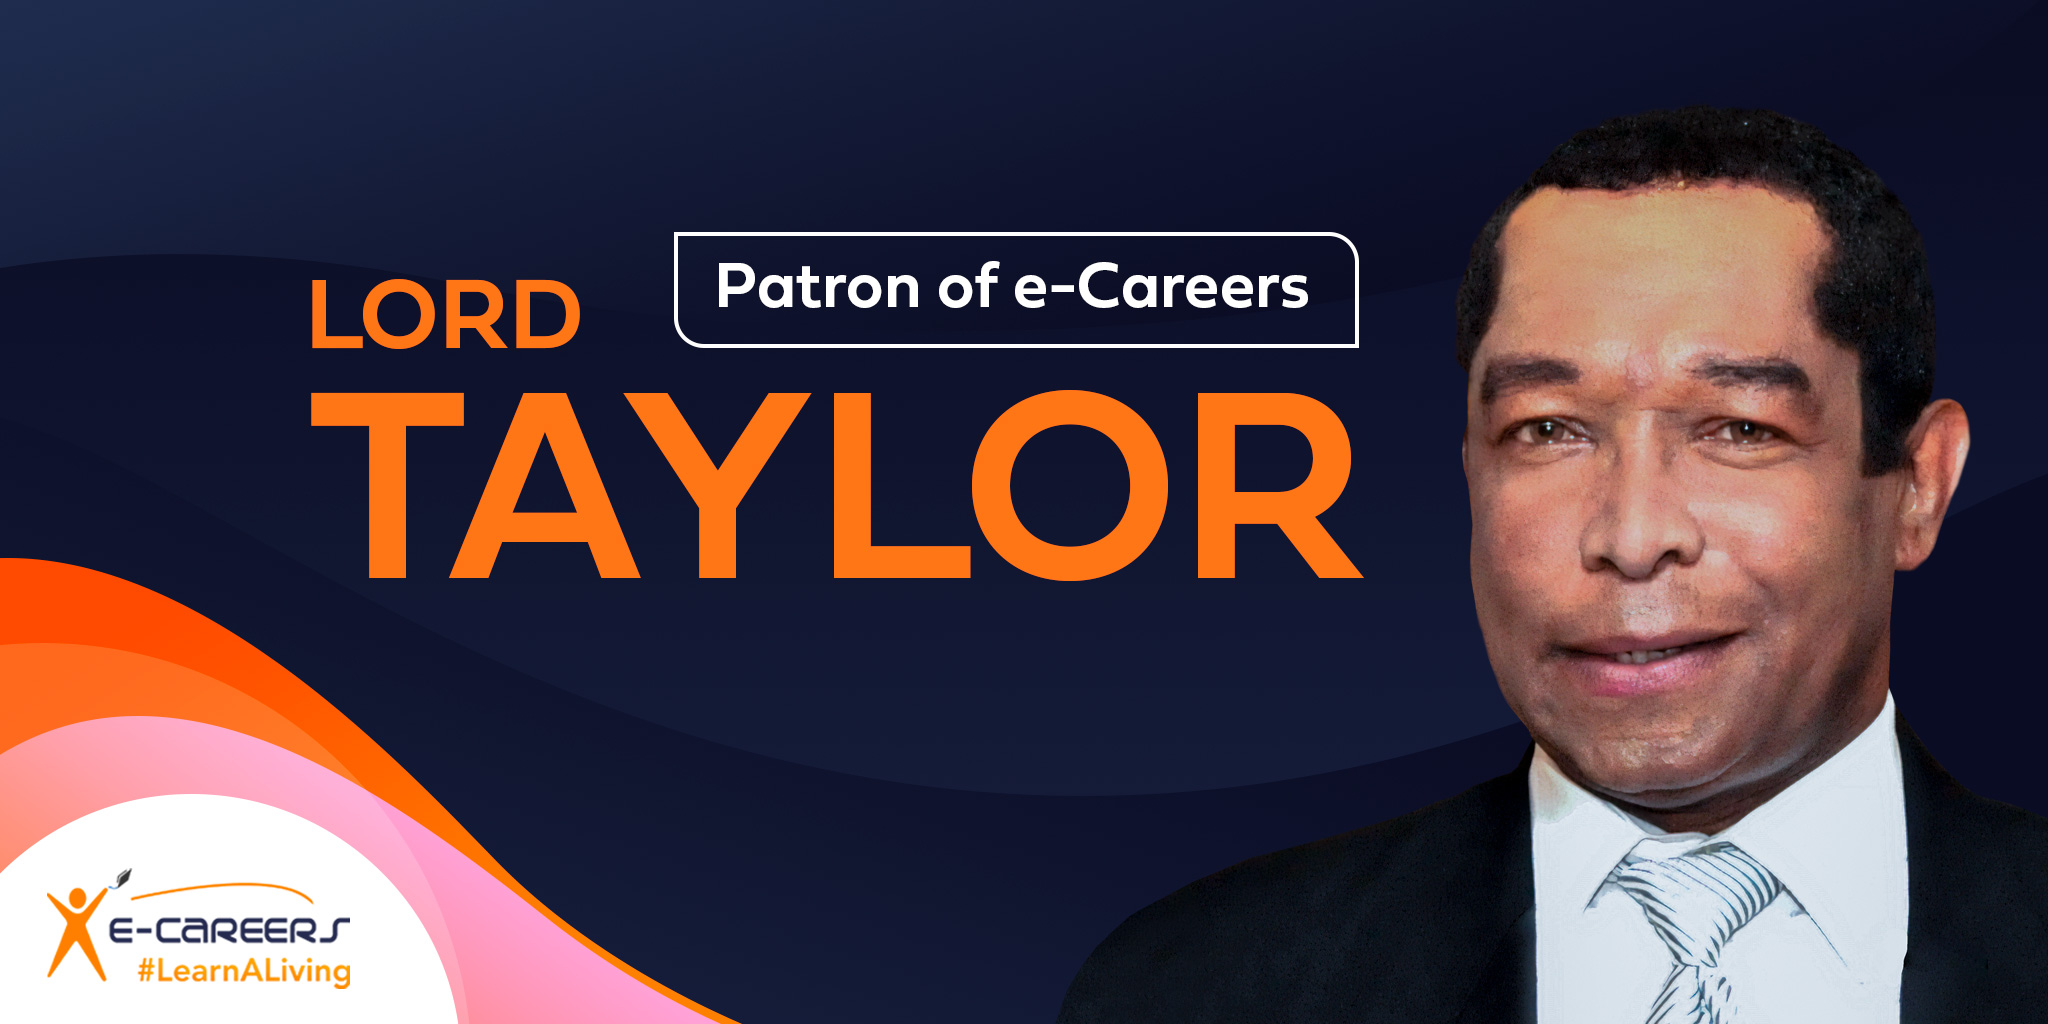 LORD TAYLOR JOINS THE DRIVE TO UPSKILL THE NATION